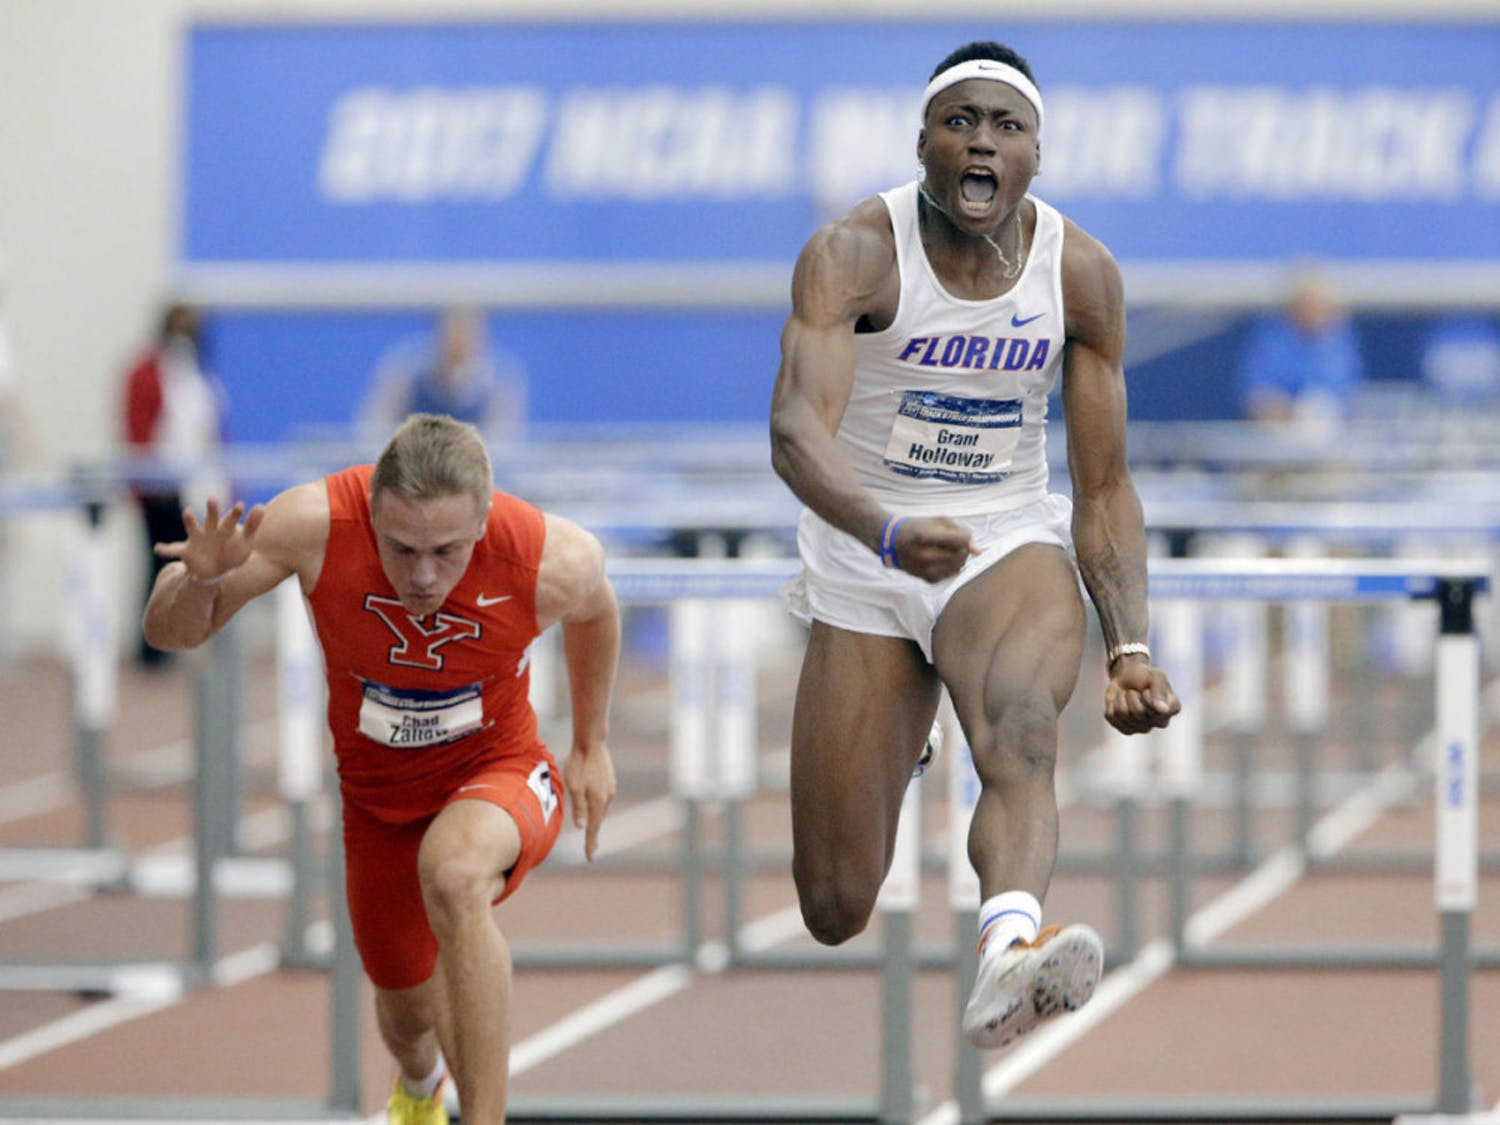 Florida sprinter, jumper and hurdler Grant Holloway finished first in both the 60-meter hurdles and the 200-meter sprint. His time of 7.49 seconds in the hurdles was the fifth fastest in collegiate history.